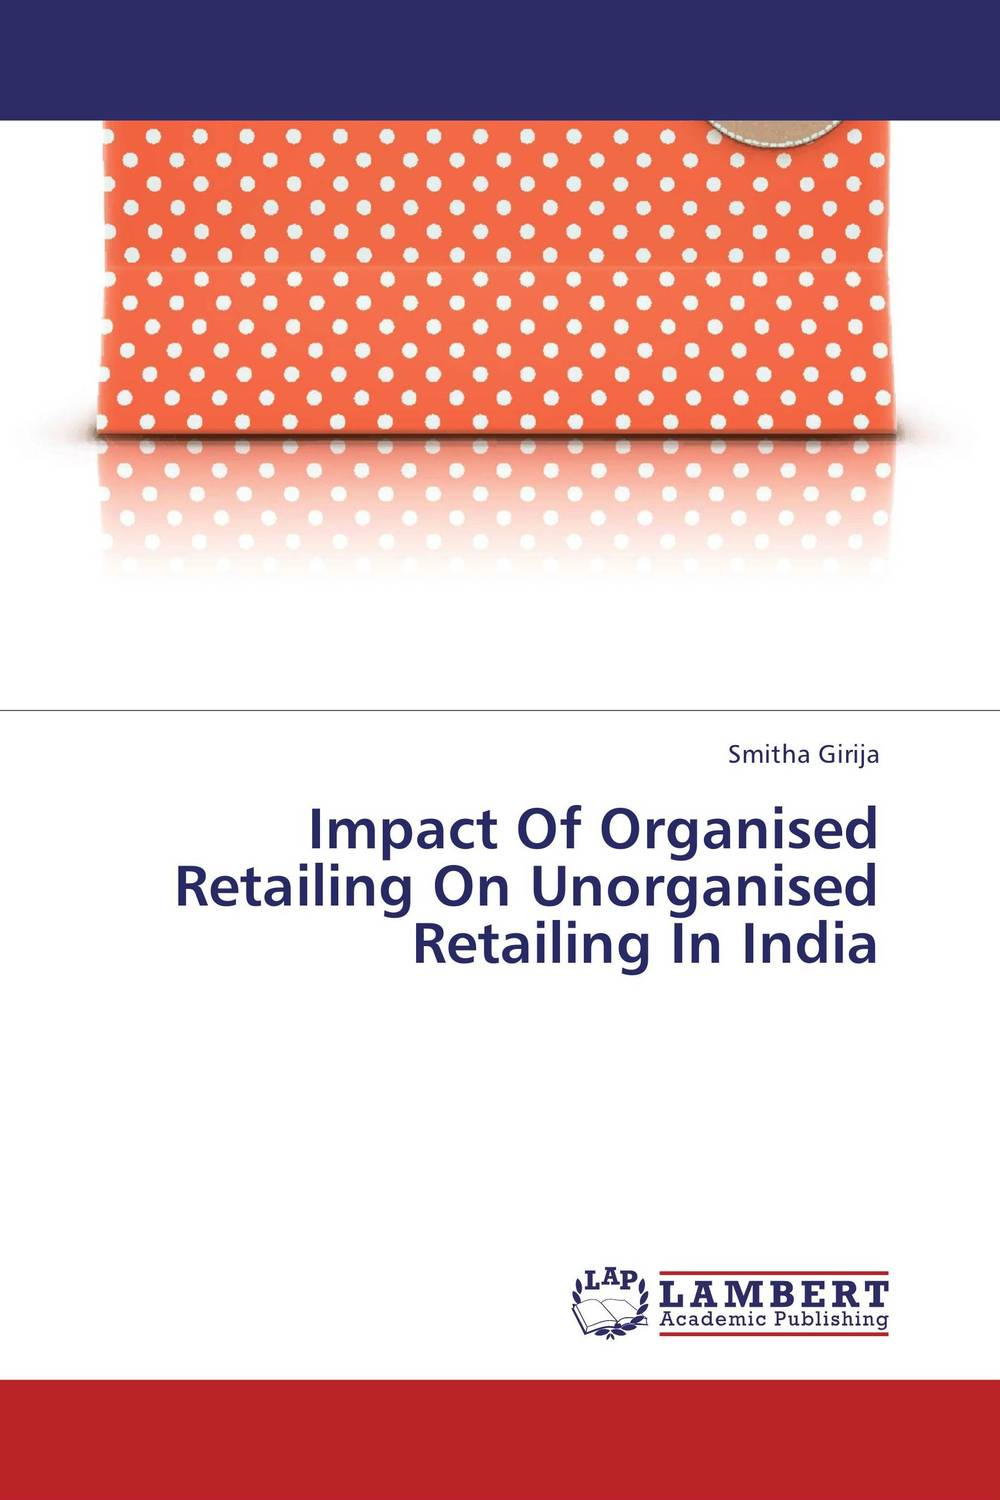 Impact Of Organised Retailing On Unorganised Retailing In India кухонные аксессуары tony and india colle ii